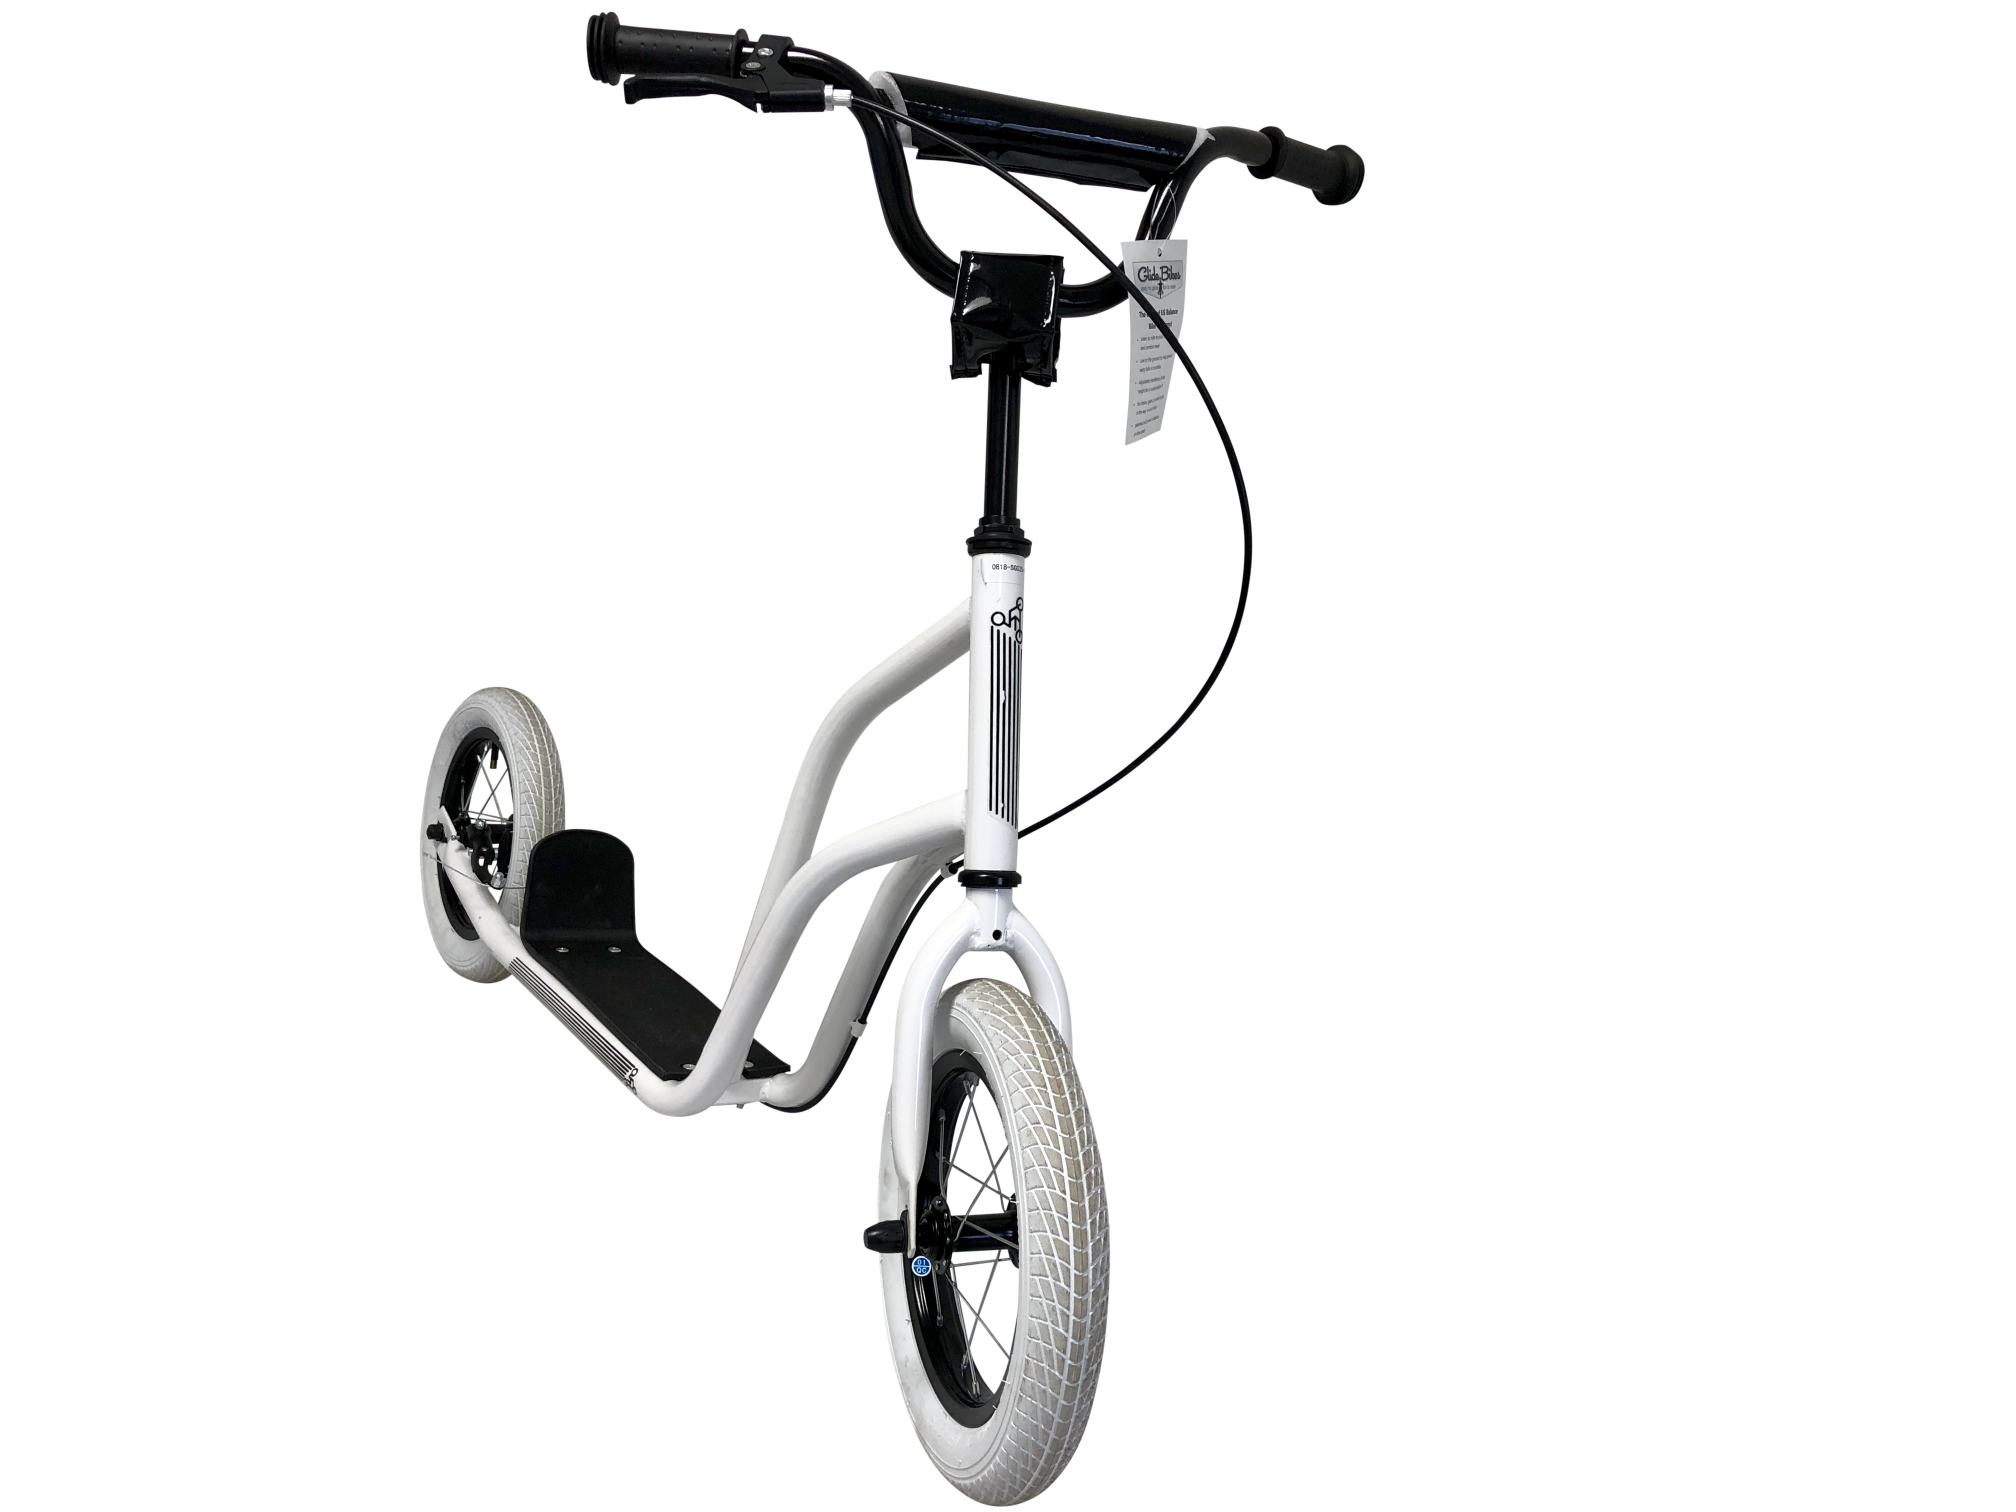 Glide Bikes Rock Hopper Scooter